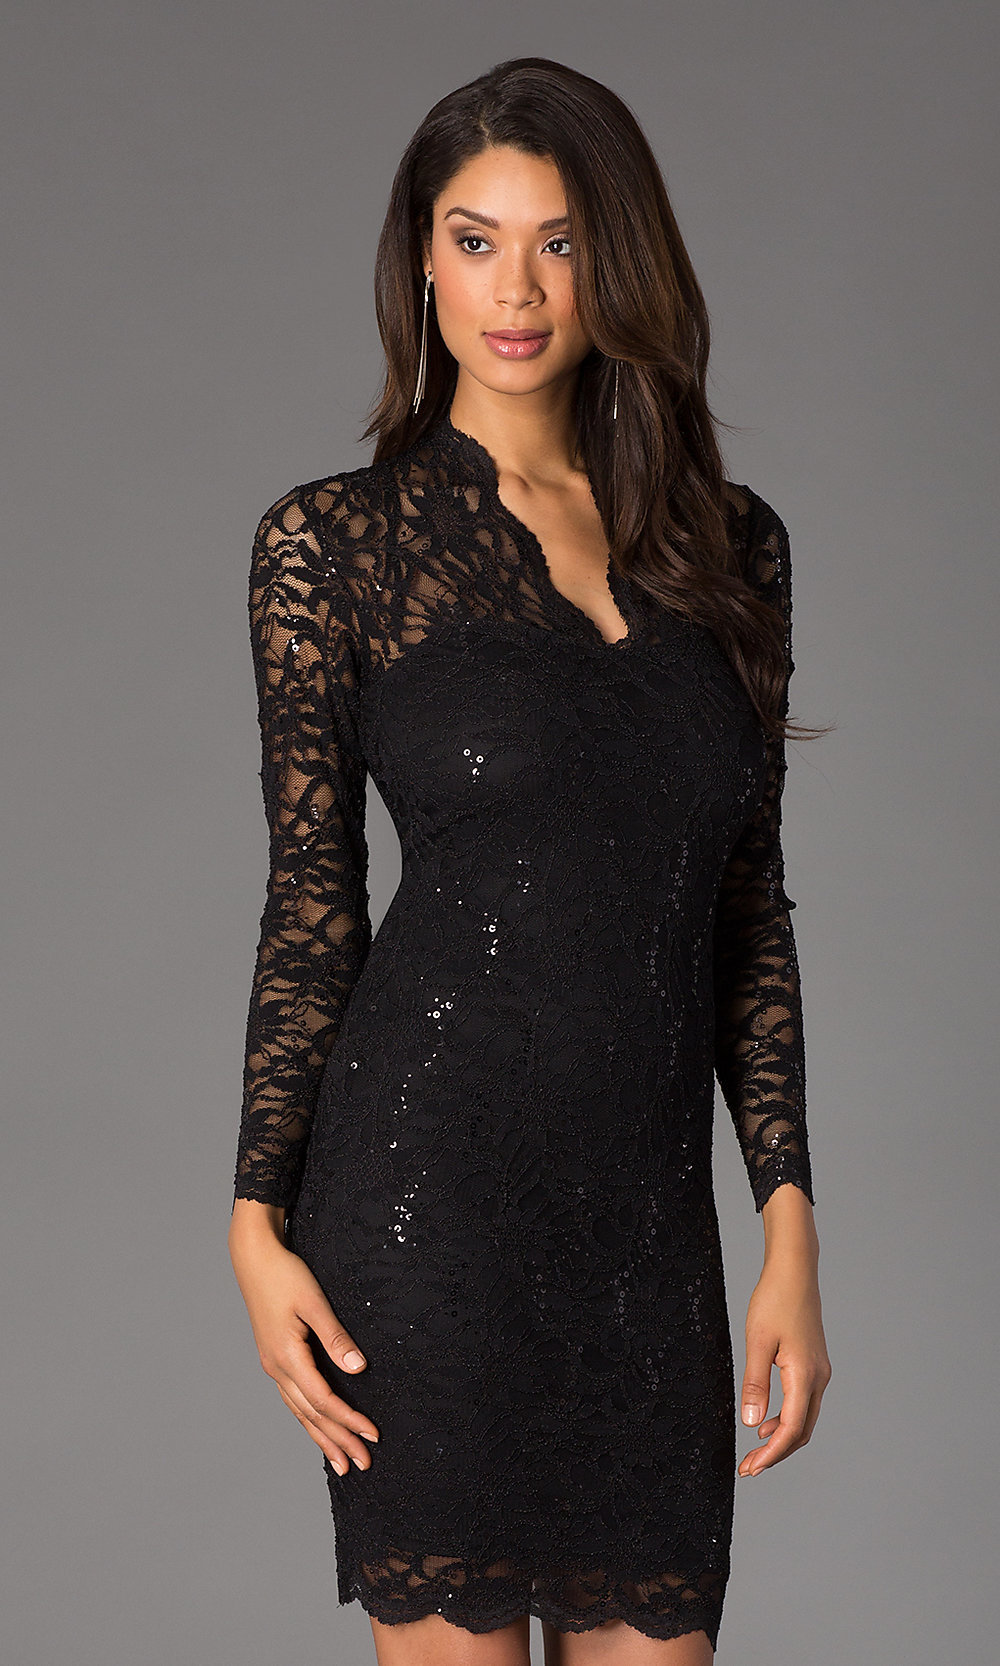 Top Lace Cocktail Dress